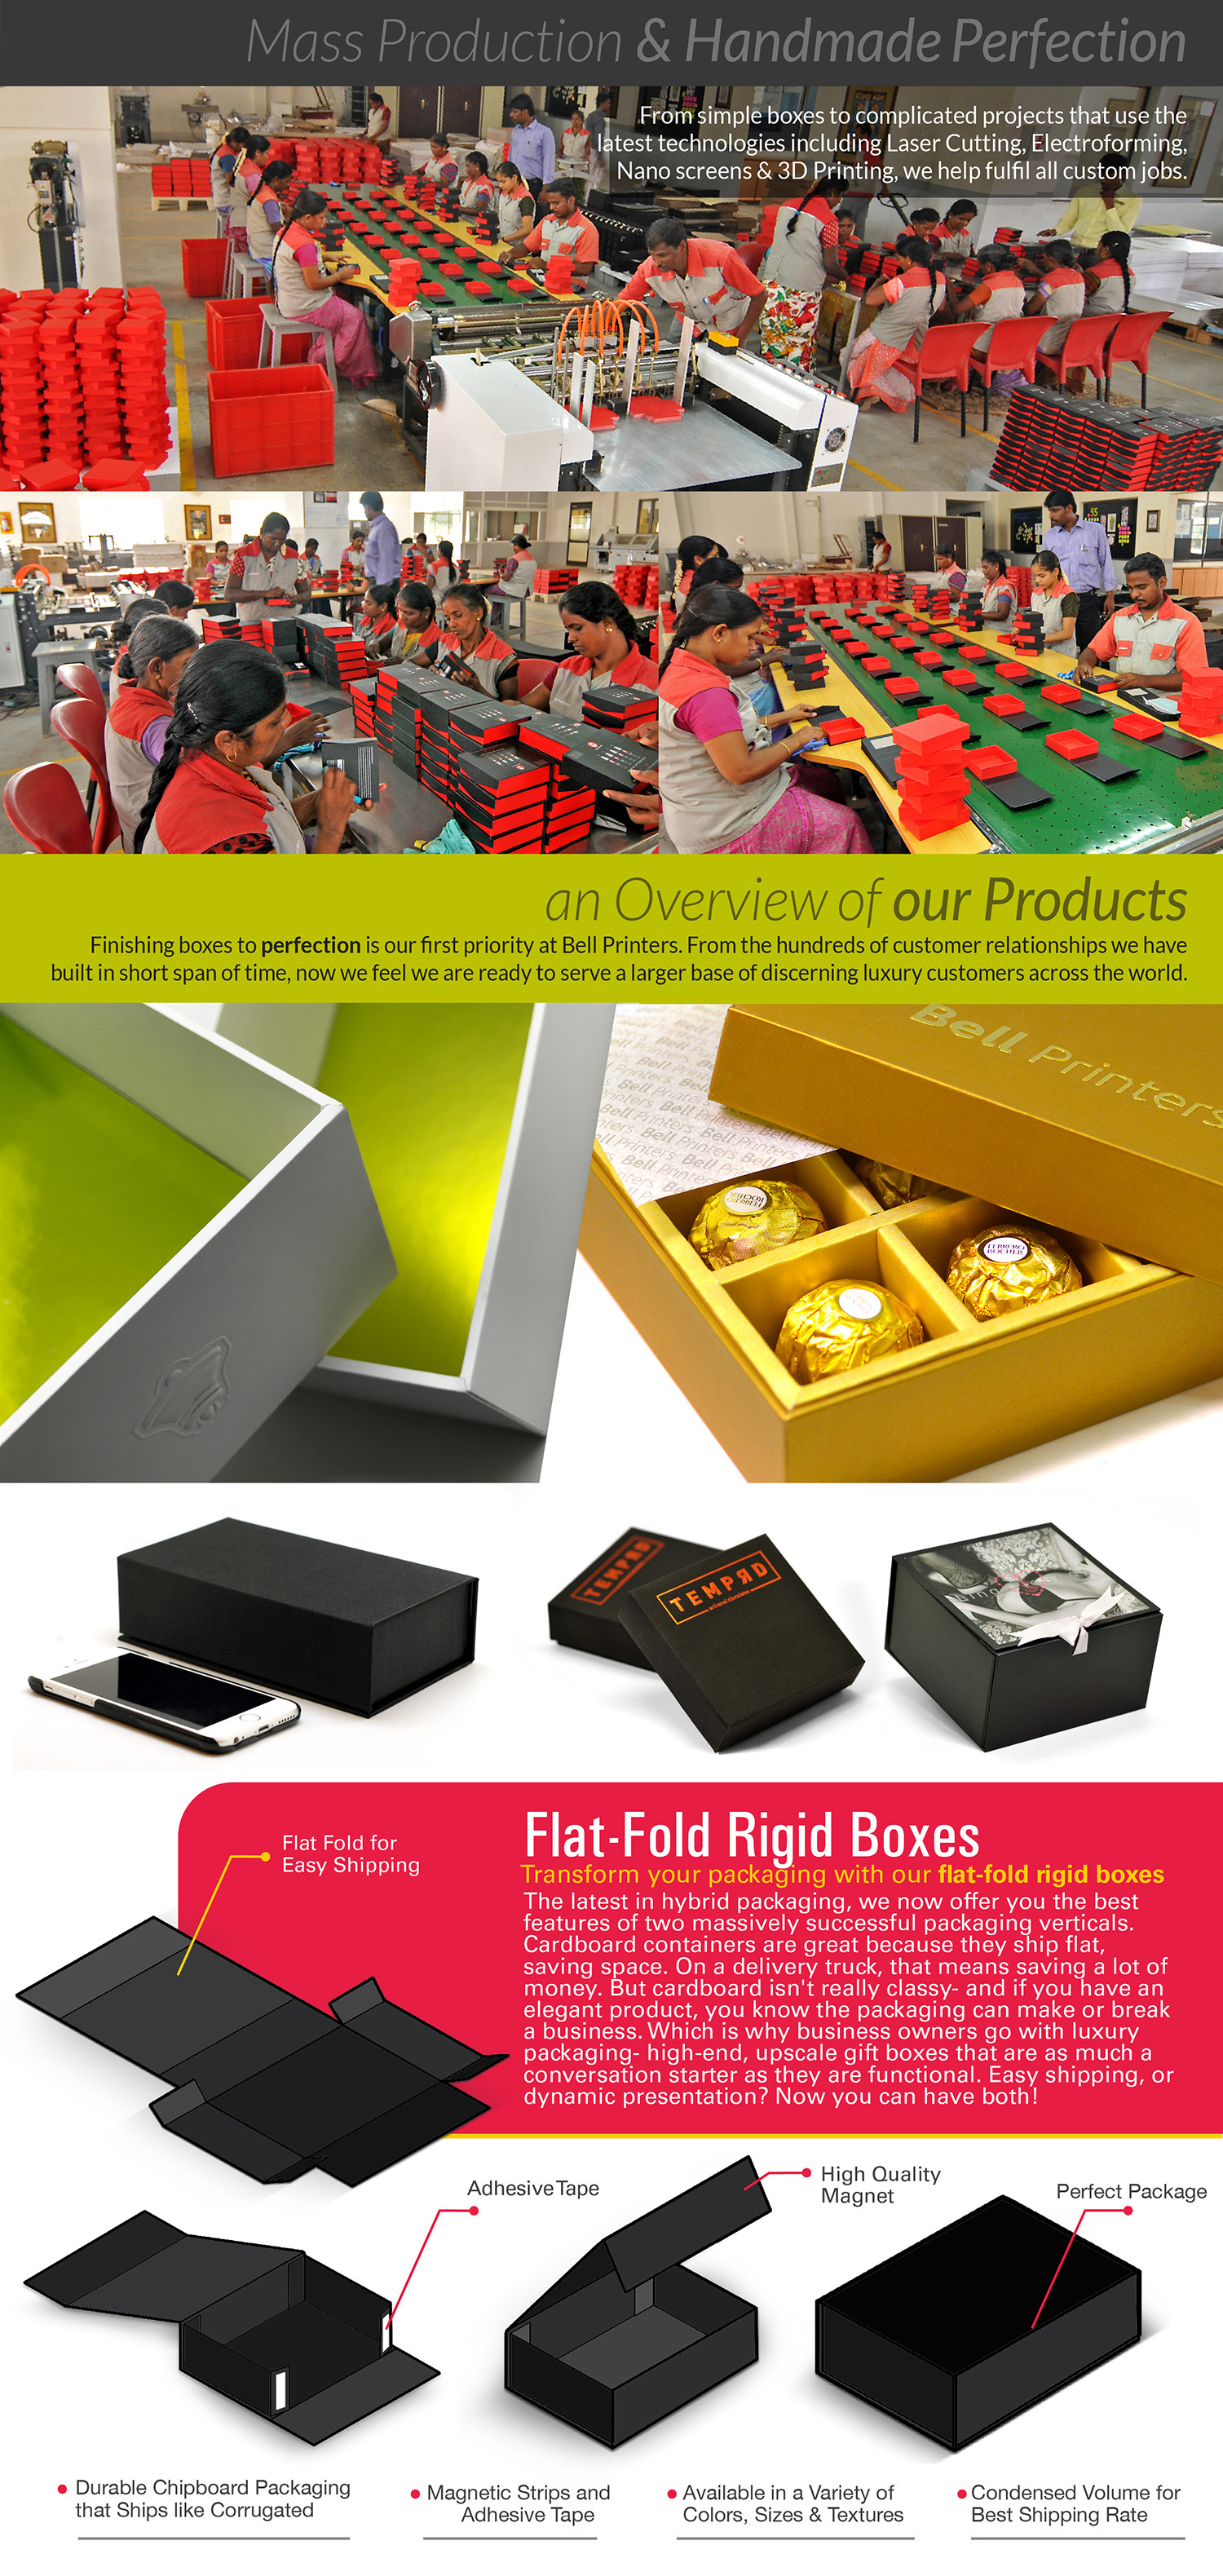 Rigid box production